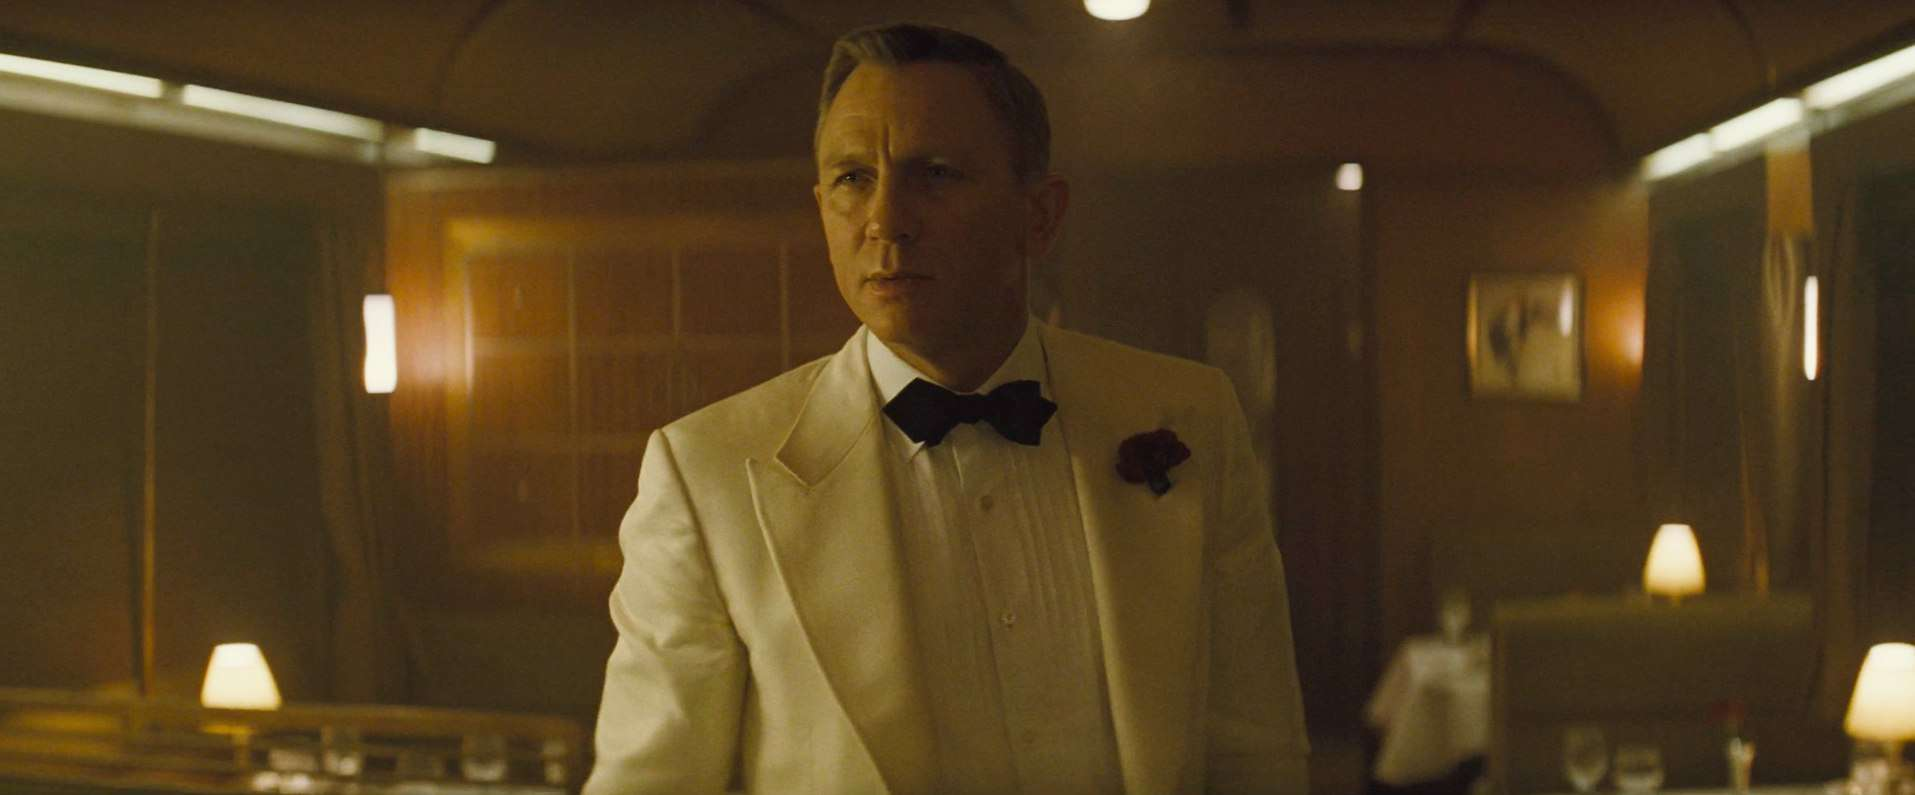 5 Most Stylish Lessons From James Bond Gurusway